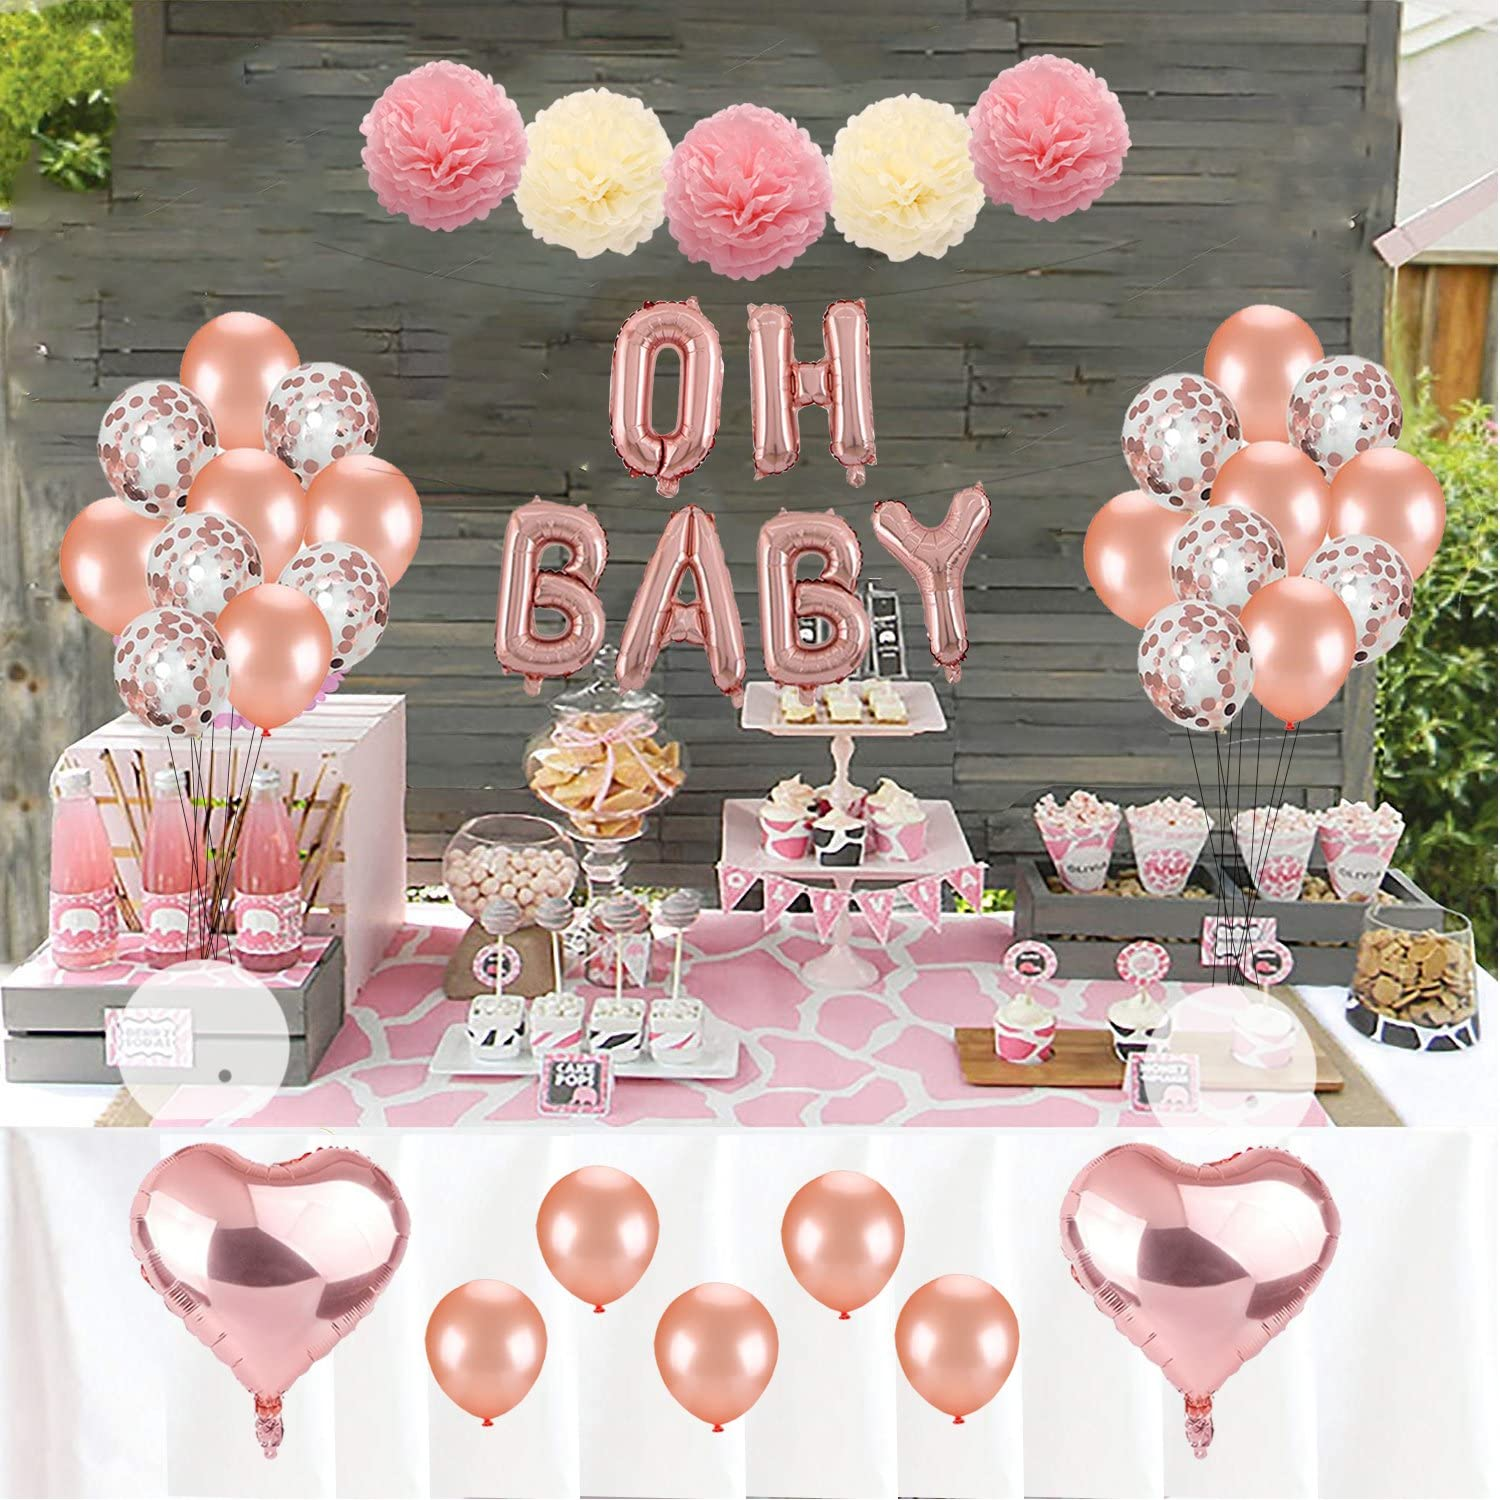 Amazon Com Kwayi Baby Shower Decoration Set Rose Gold Theme Baby Shower Decoration With Oh Baby Banner Rose Gold Balloon And Tissue Paper Pom Poms Toal 35pcs For Baby Shower Party Decoration Arts